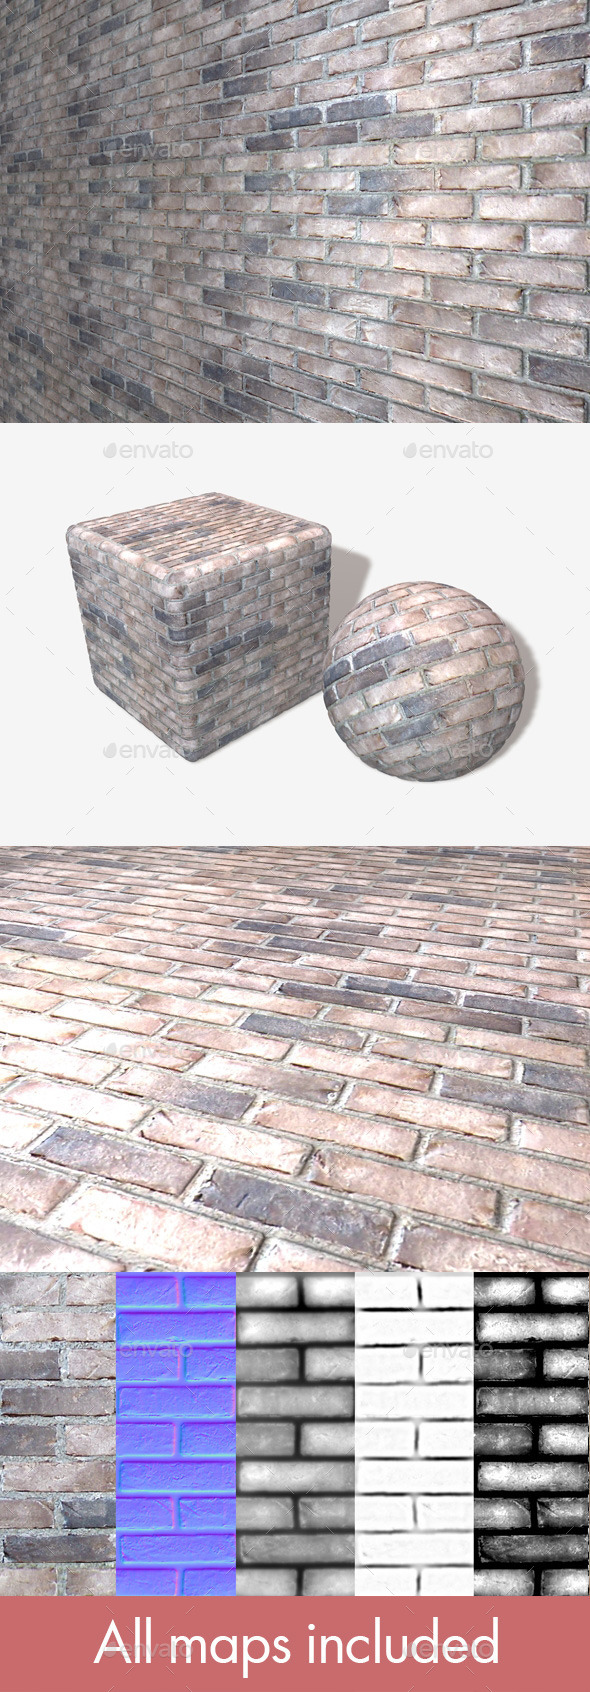 Whitewash Bricks Seamless Texture - 3DOcean Item for Sale